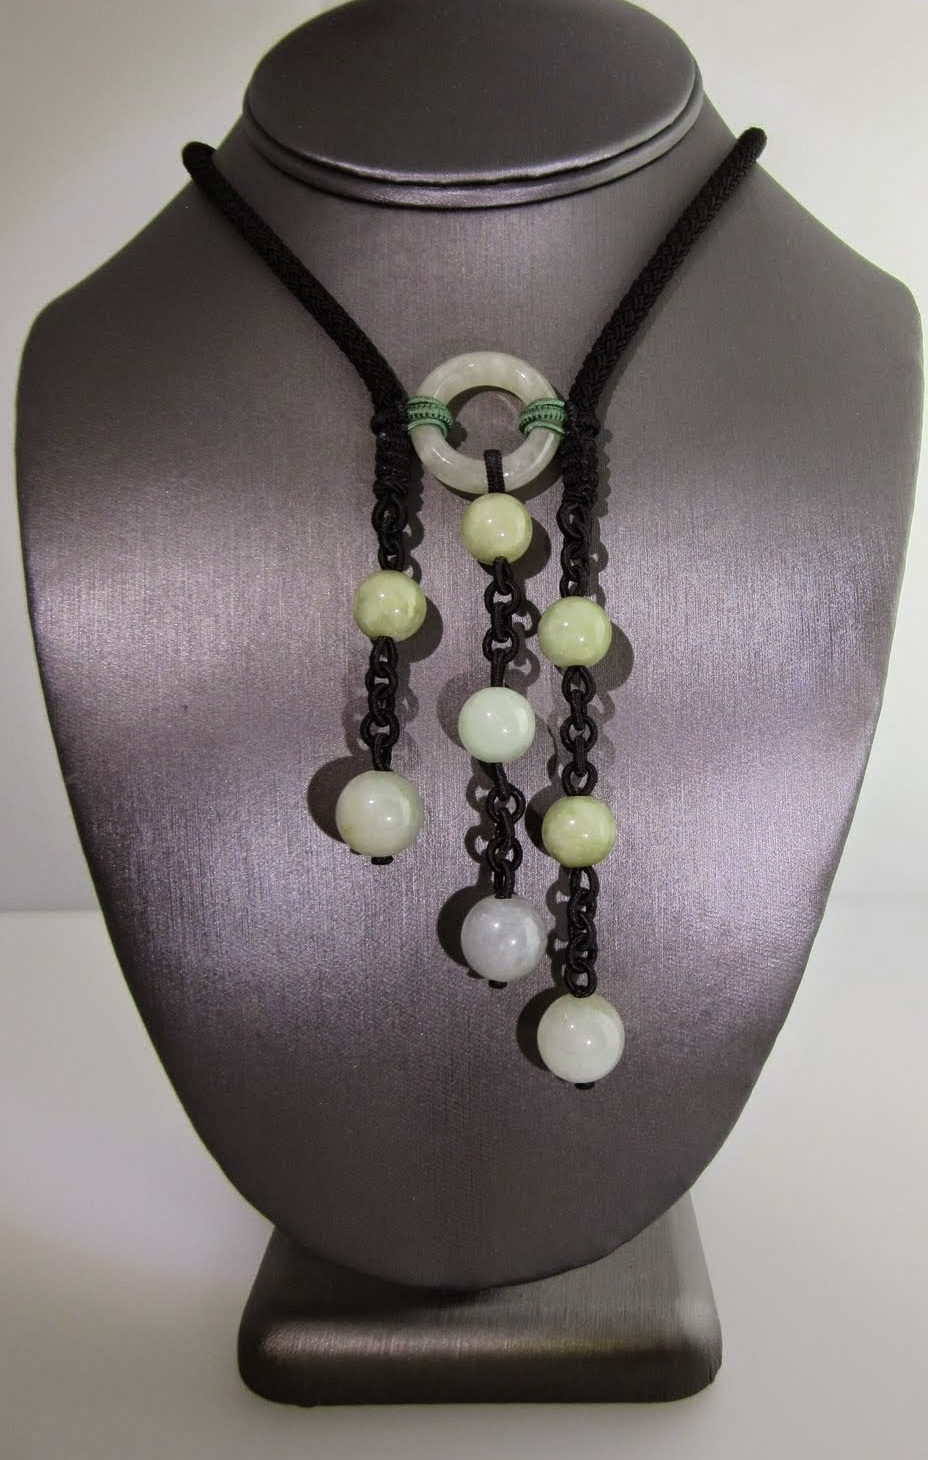 Triple Onyx Necklace with Jade Green